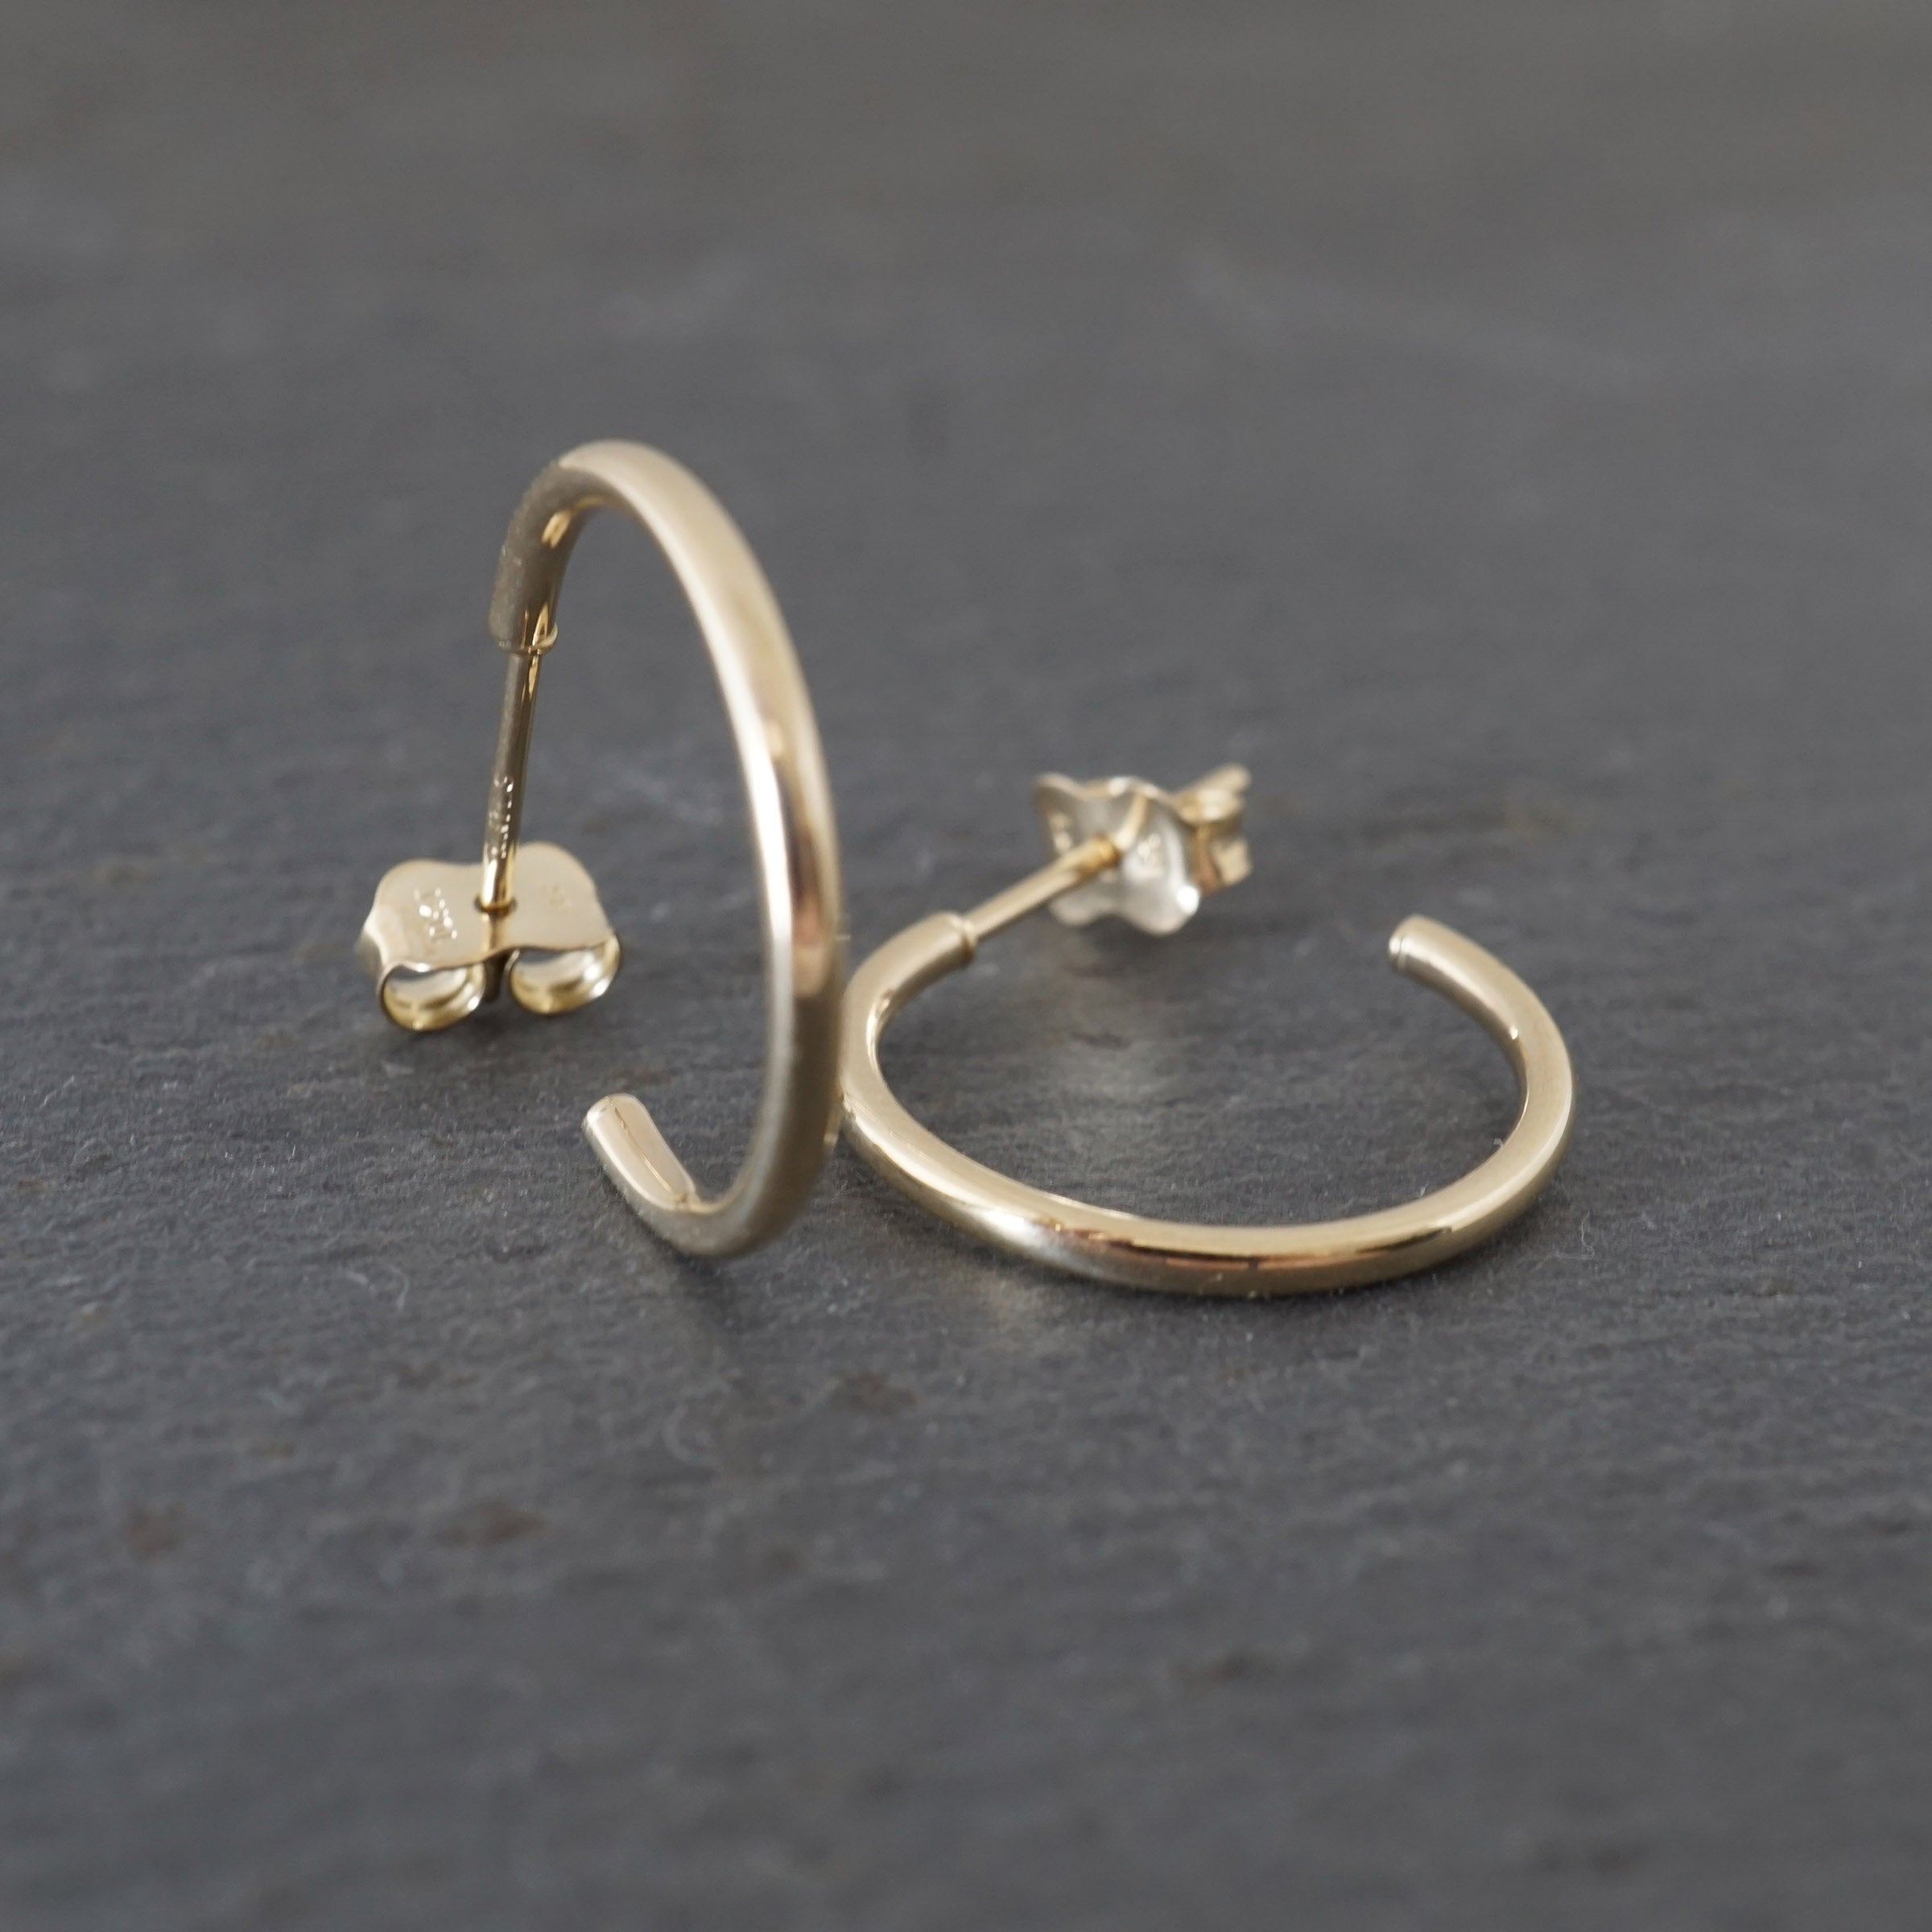 Small Round Hoops 10k Gold Studs